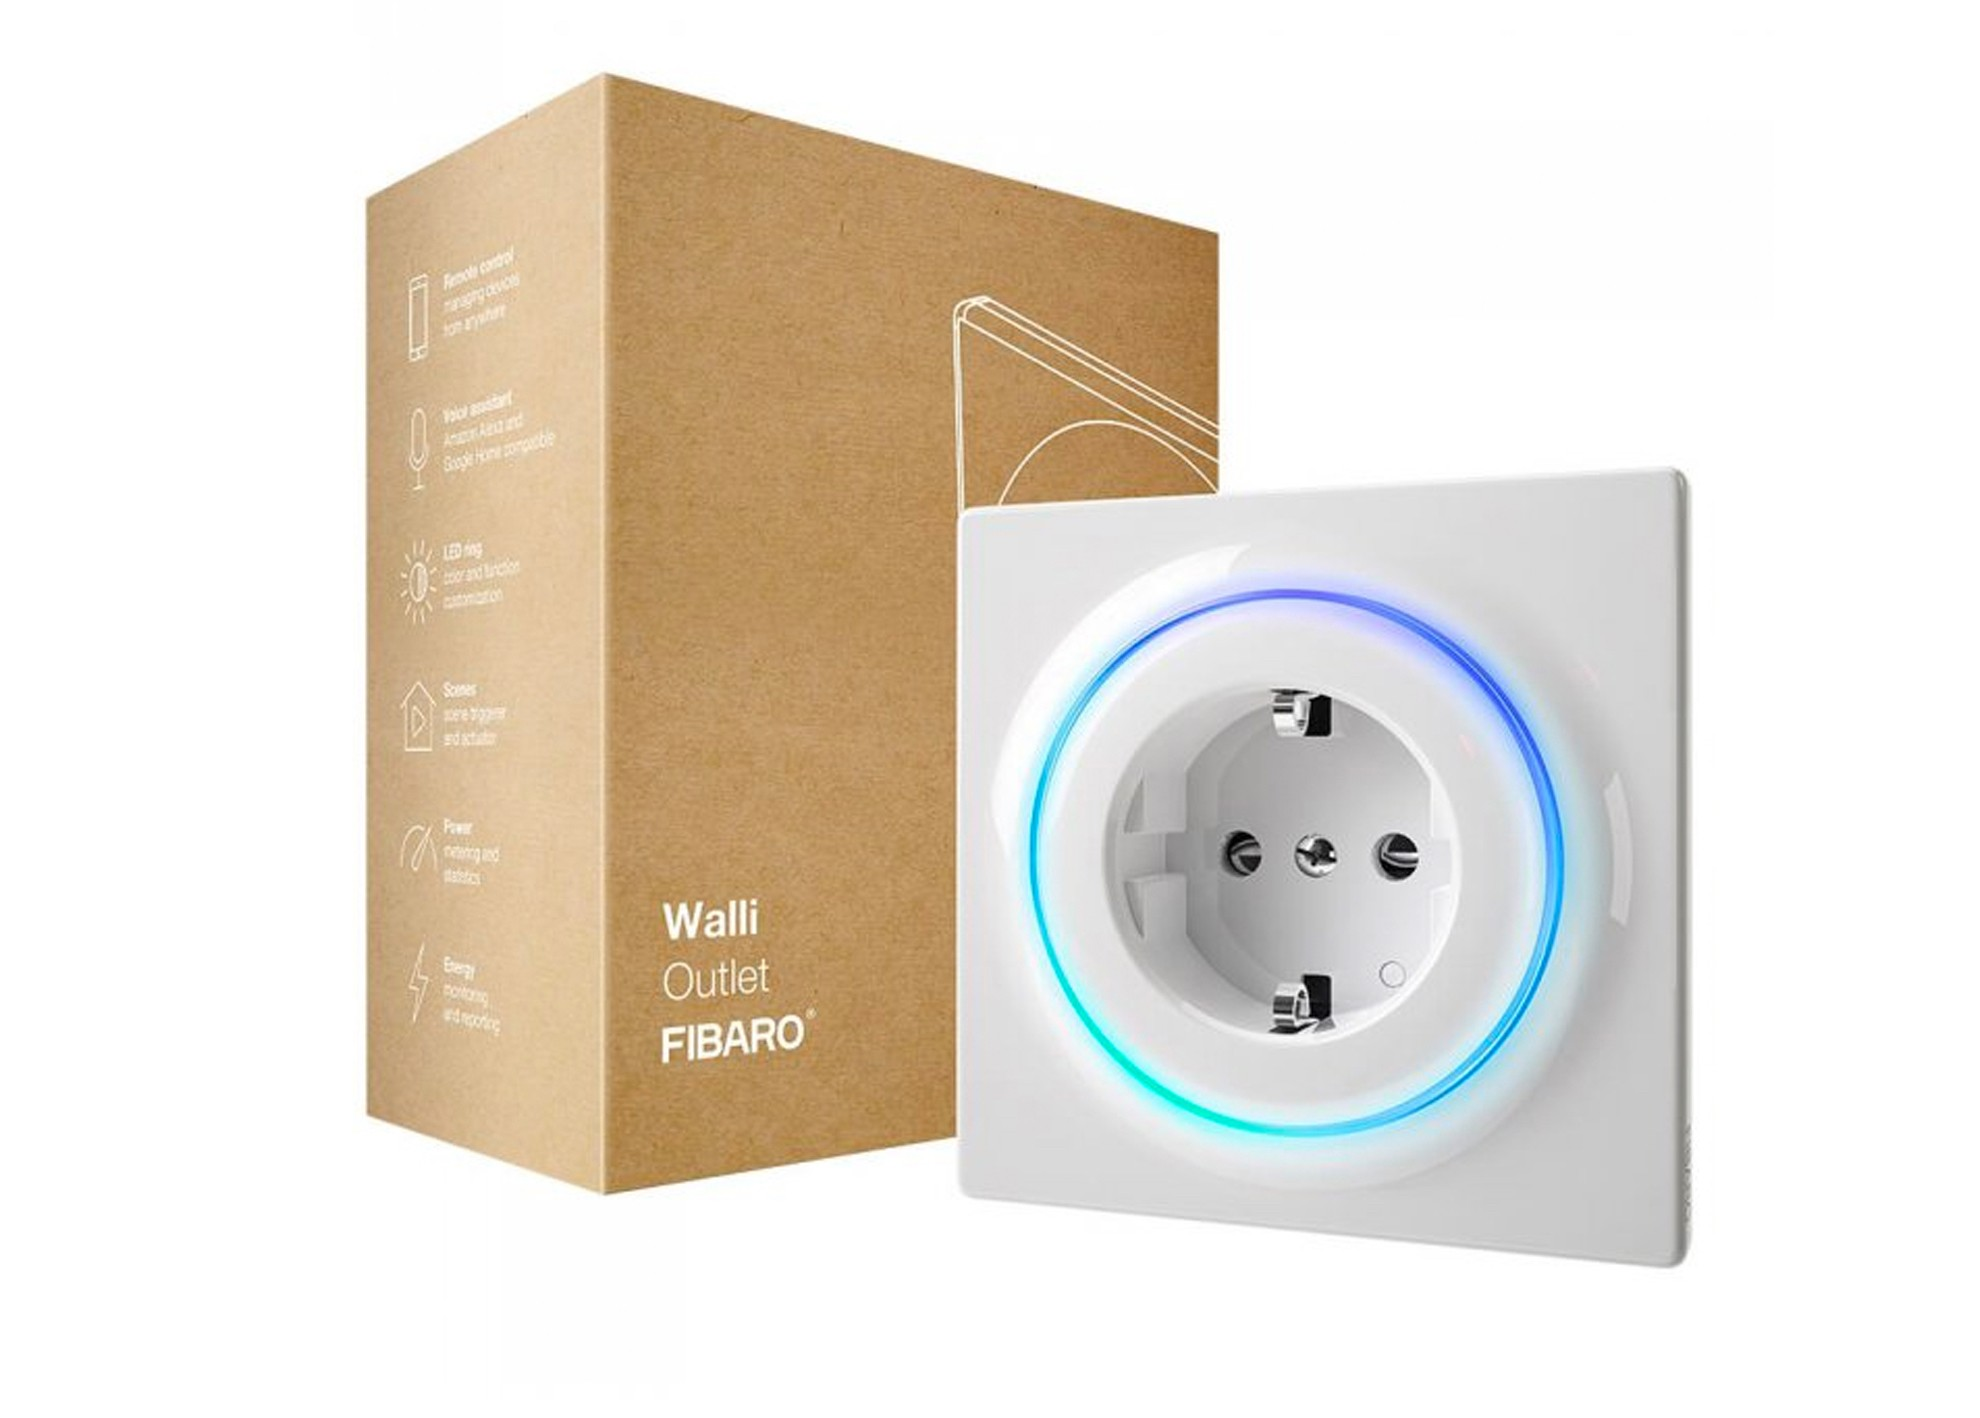 Intelig. zásuvka Fibaro Walli Outlet typ F Z-Wave